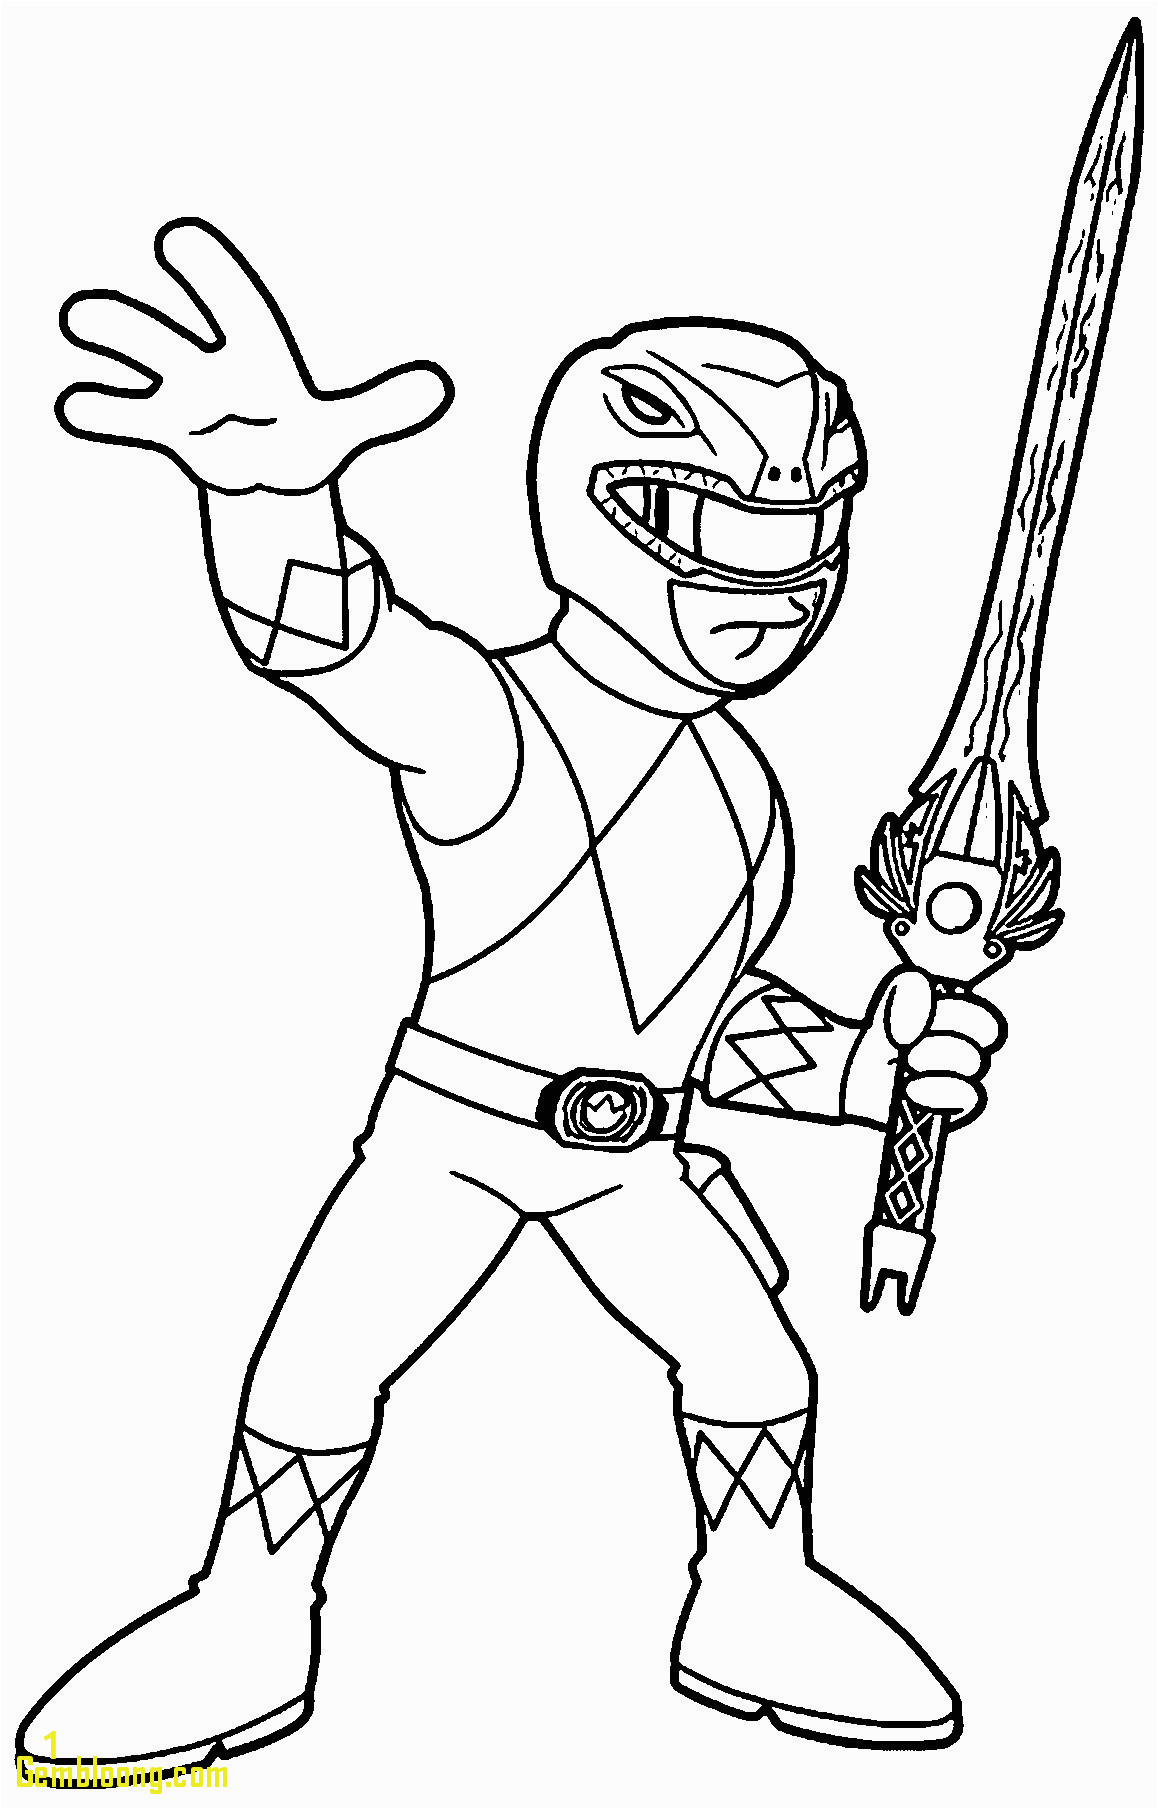 coloring picture power ranger pages for kids of rangers book ccnaquestions dino charge pictures megazord red page